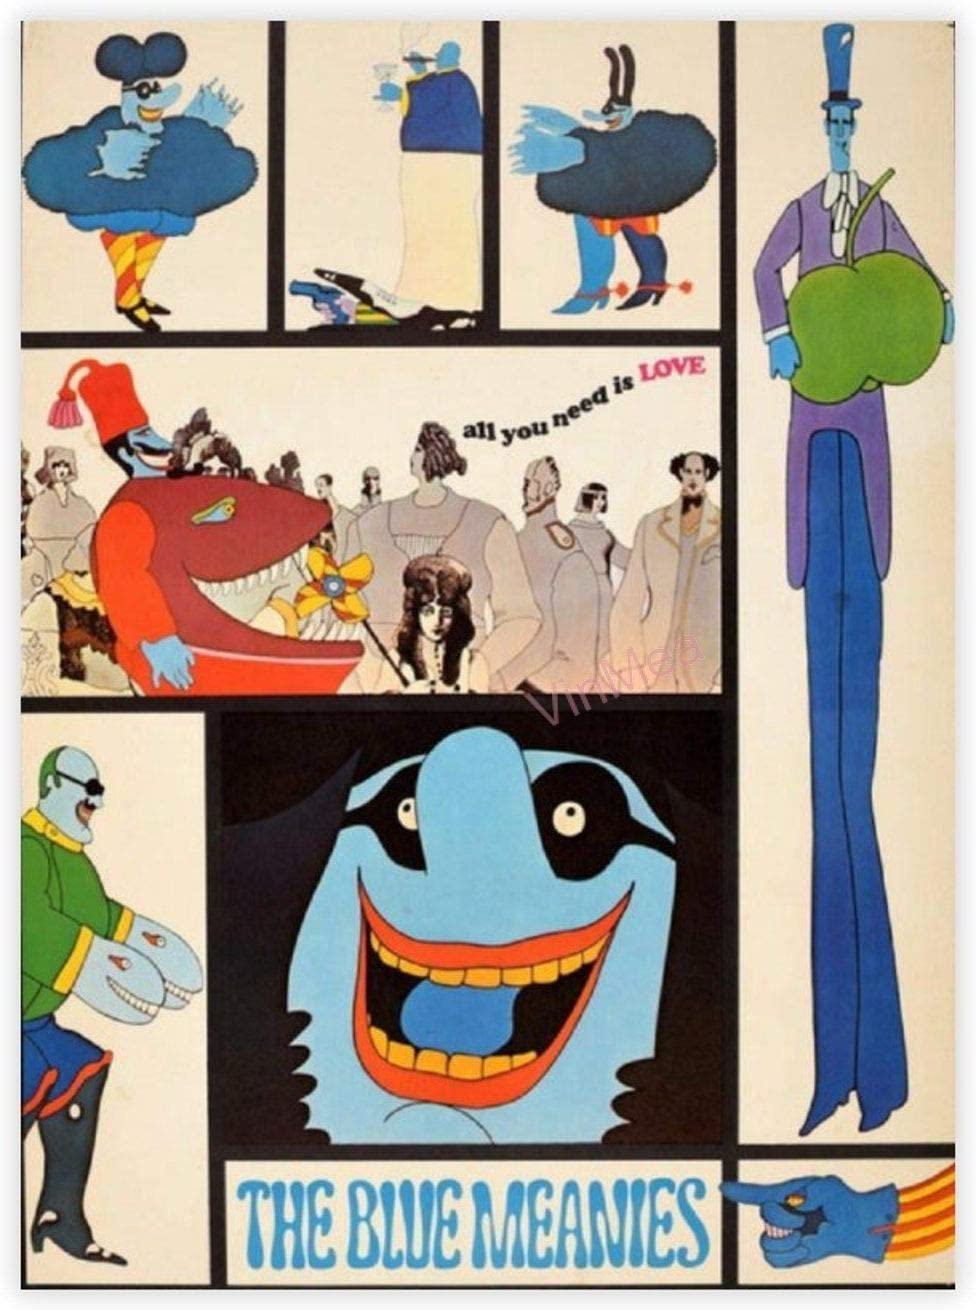 VinMea Unframed Decorative Art Printing Poster The Blue Meanies Yellow Submarine Film The Beatles Music Paper Poster Printing - Wall Art Print Home Decor 12 X 16 Inch